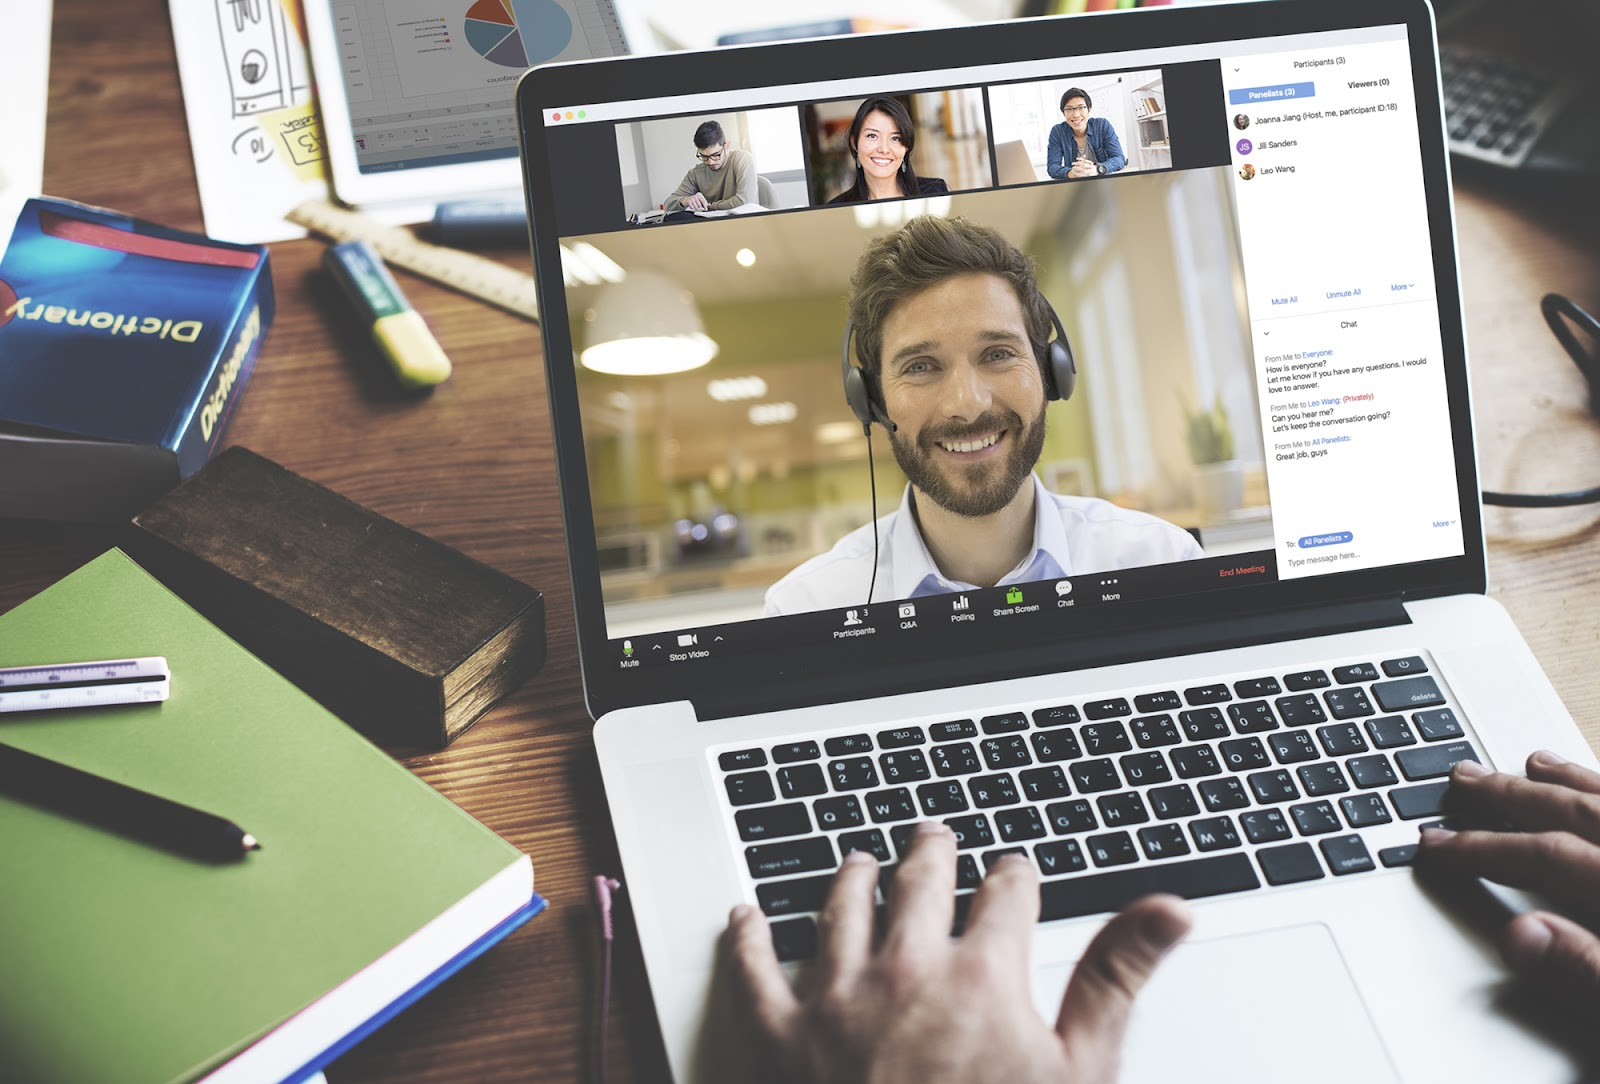 Illustratory image of Zoom showcasing its video conferencing tool